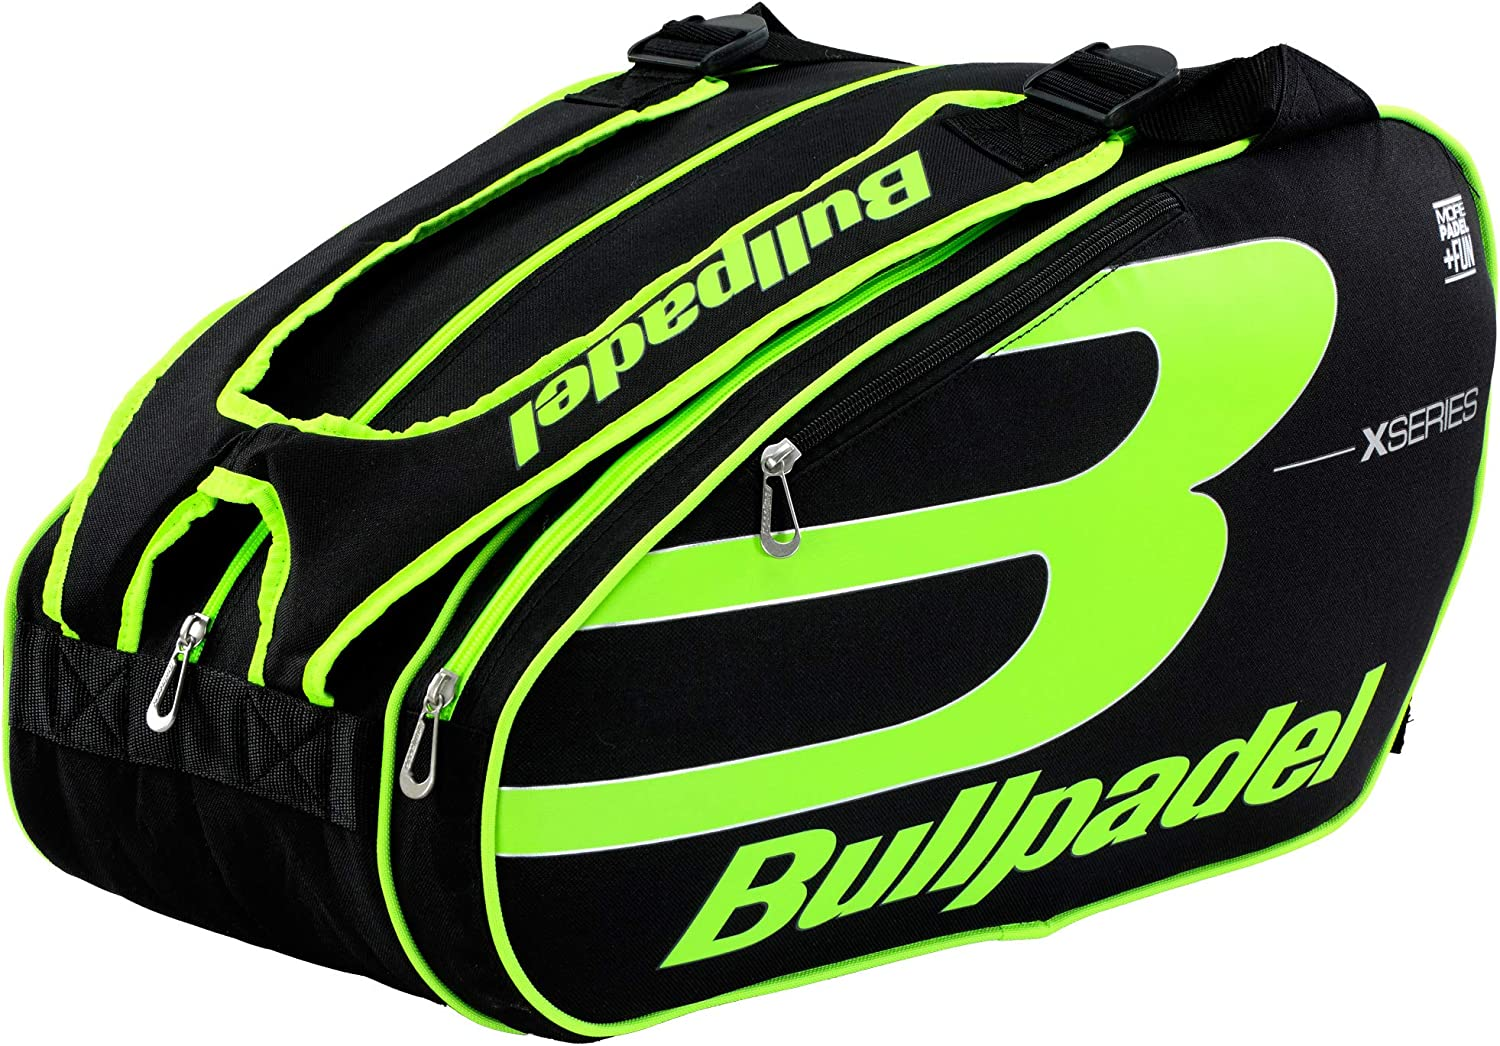 Paletero Bullpadel 17004 Yellow: Amazon.es: Deportes y aire libre